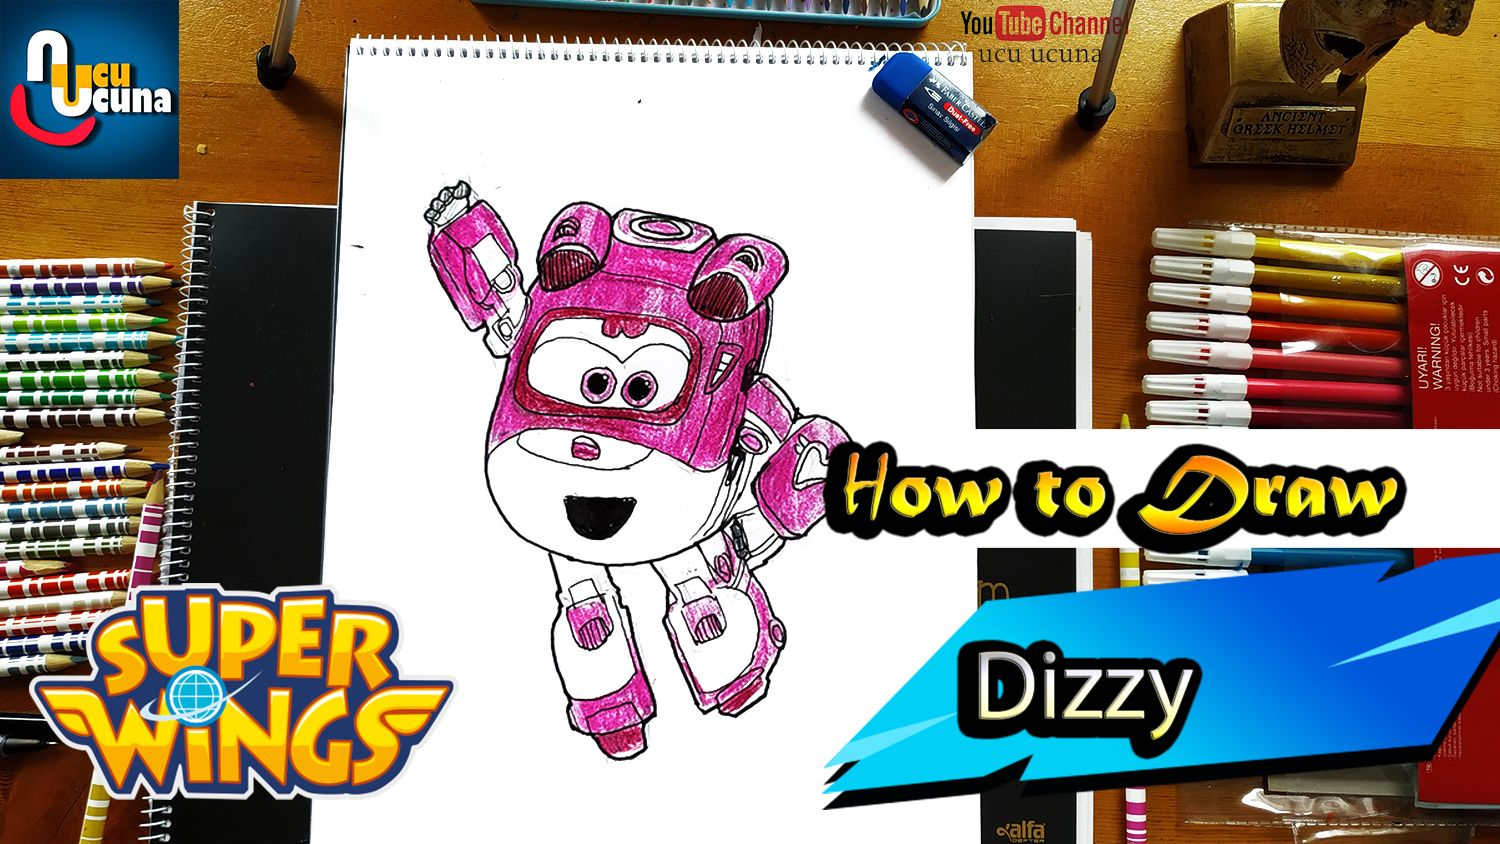 Super Wings Dizzy Draw And Paint Step By Step For Kidshi Friends How To Draw Dizzy How To Paint Dizzy Stey By Step Tutorial From Supe Kanatlar Cizim Youtube